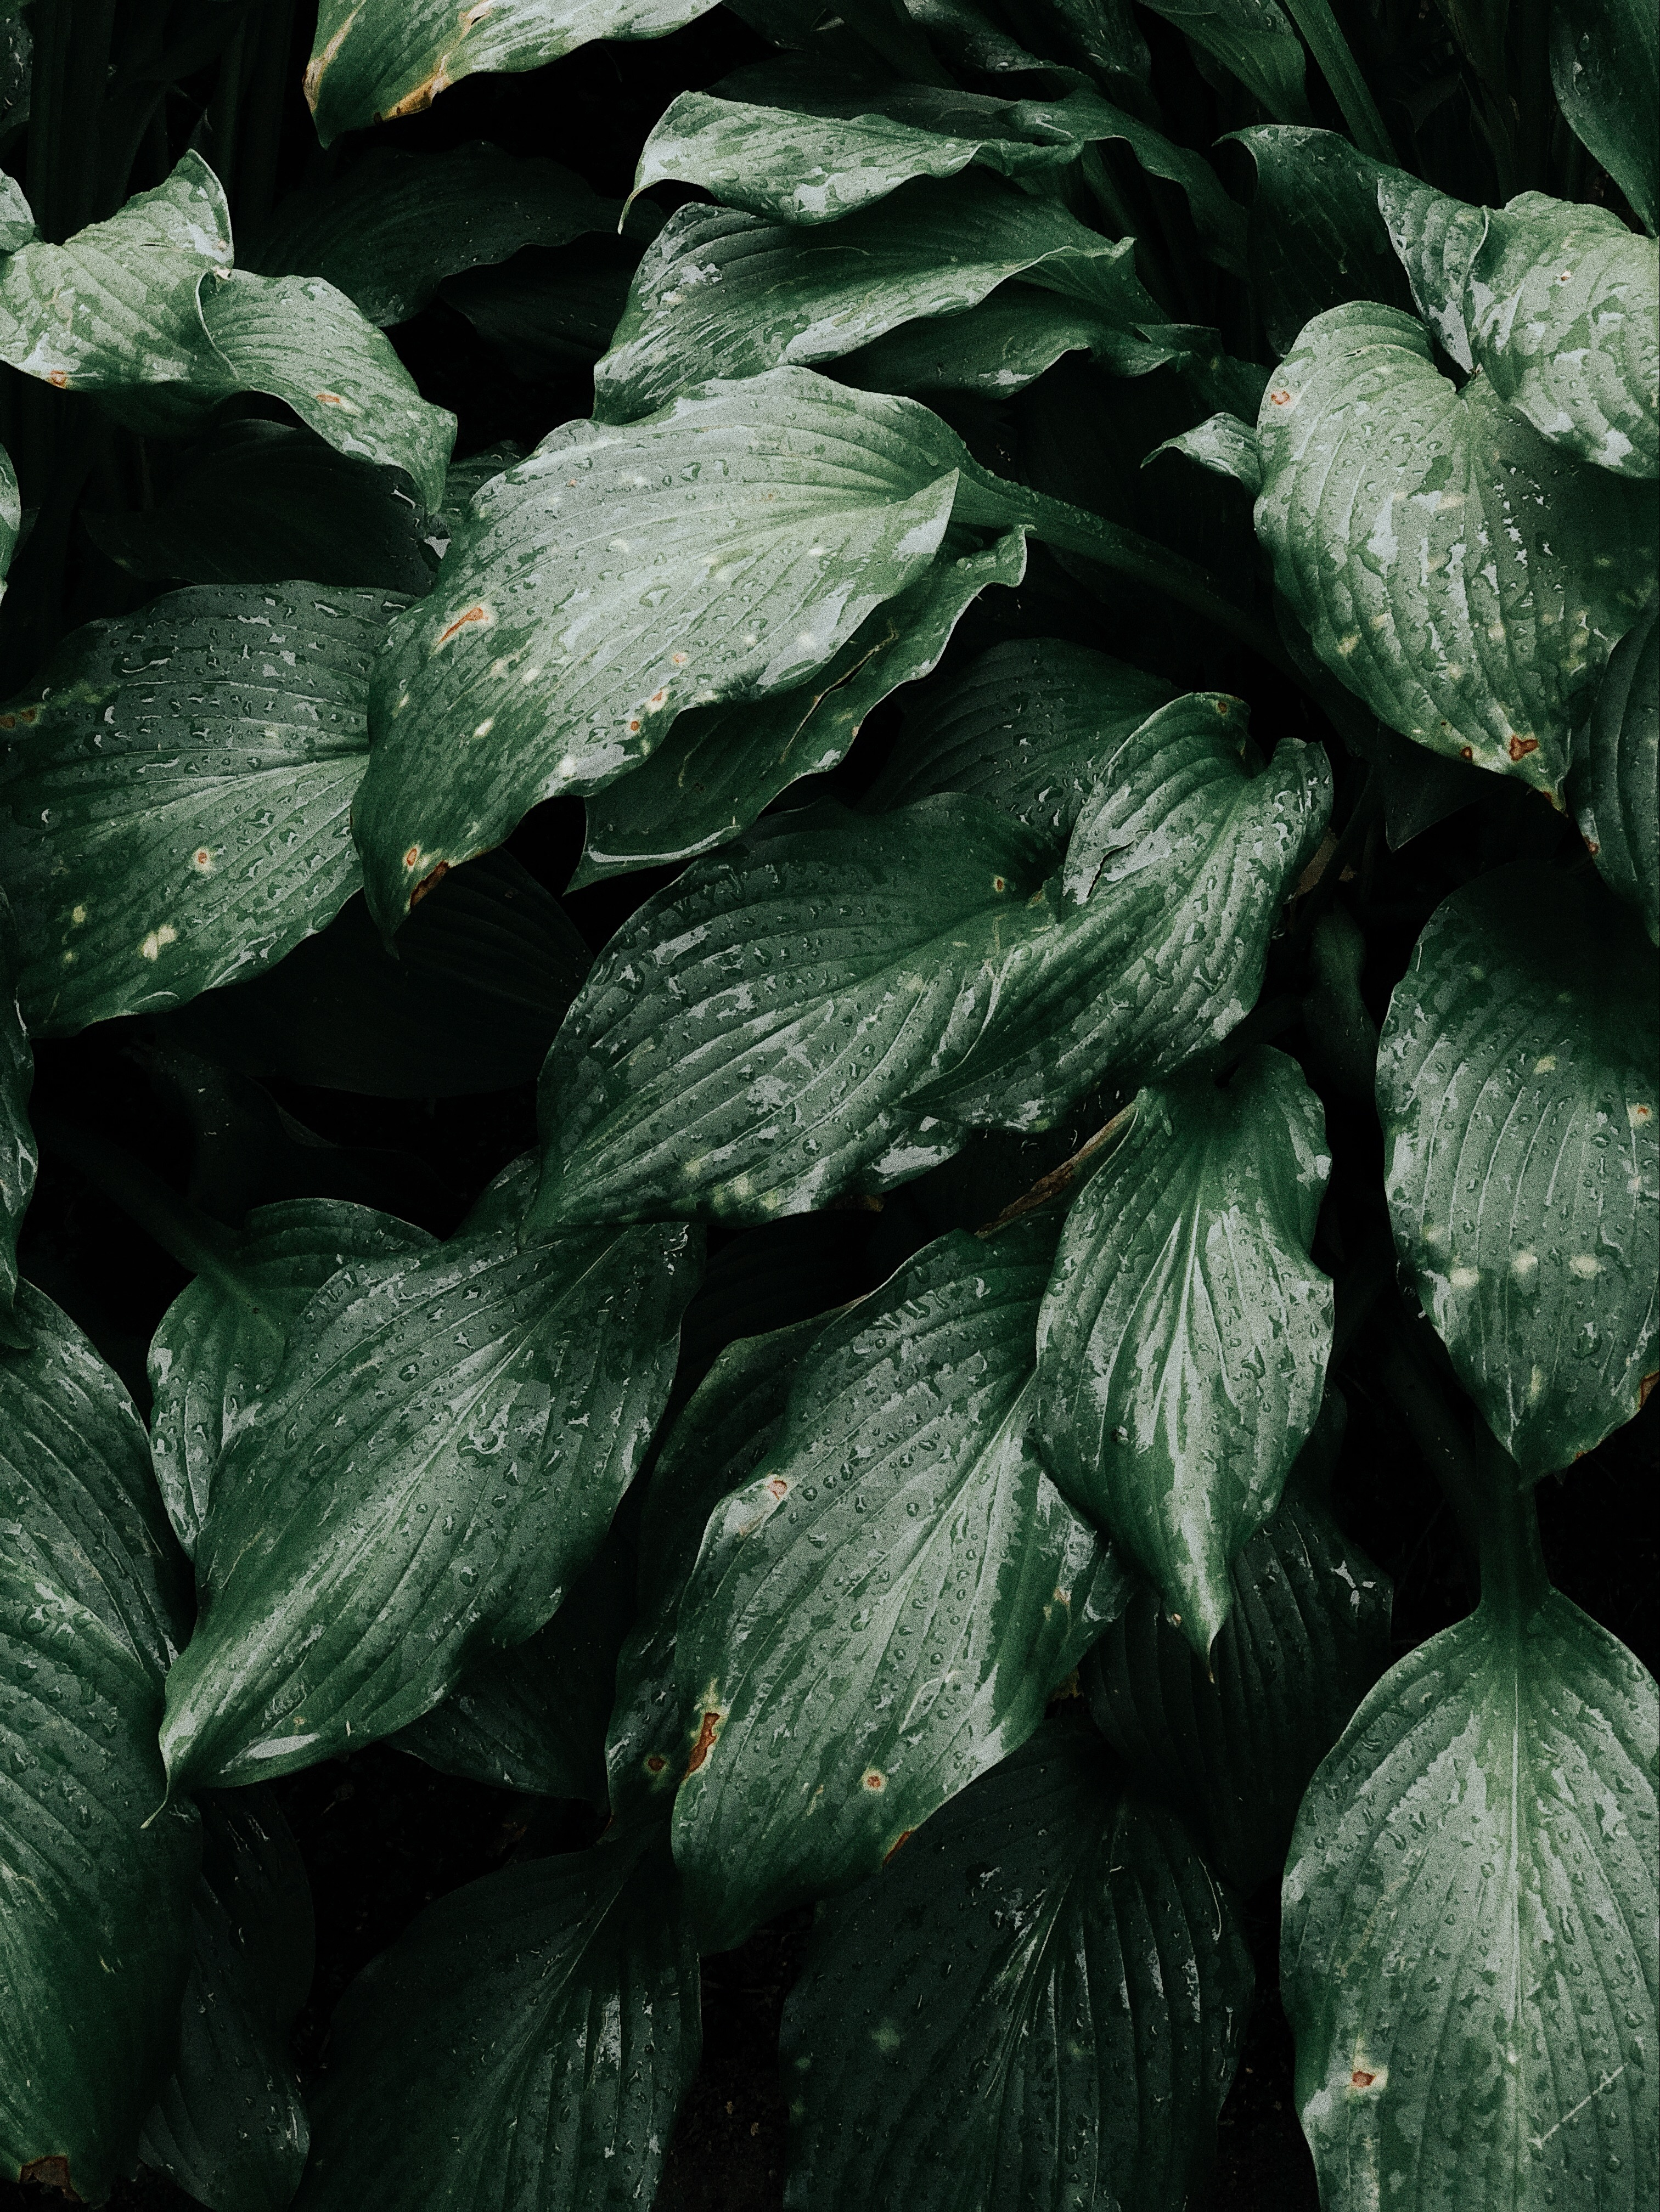 Close up photo of green leafy plant